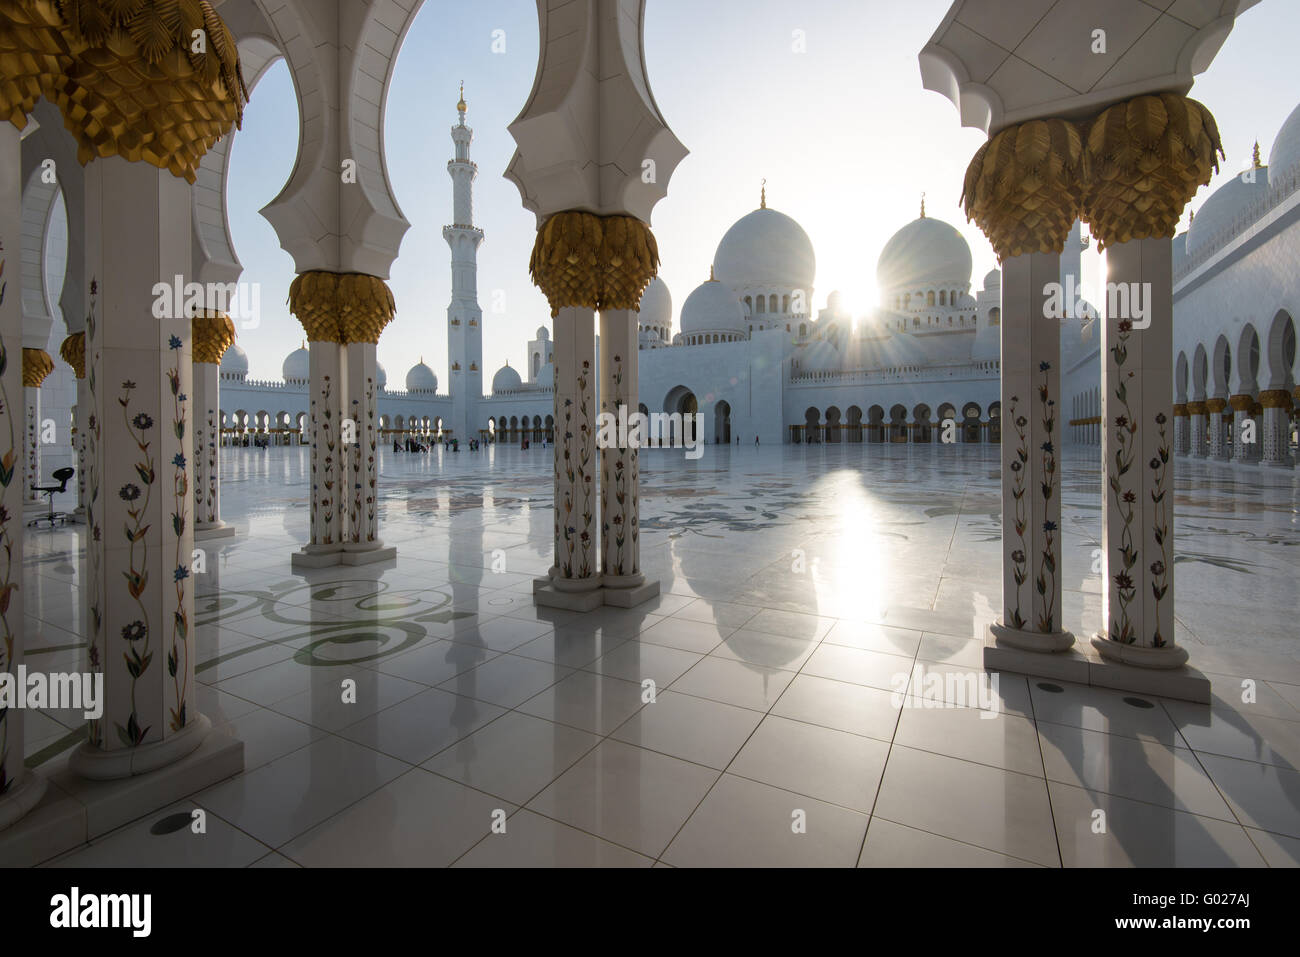 Abu Dhabi, Grande Mosquée de Sheikh Zayed. Photo Stock